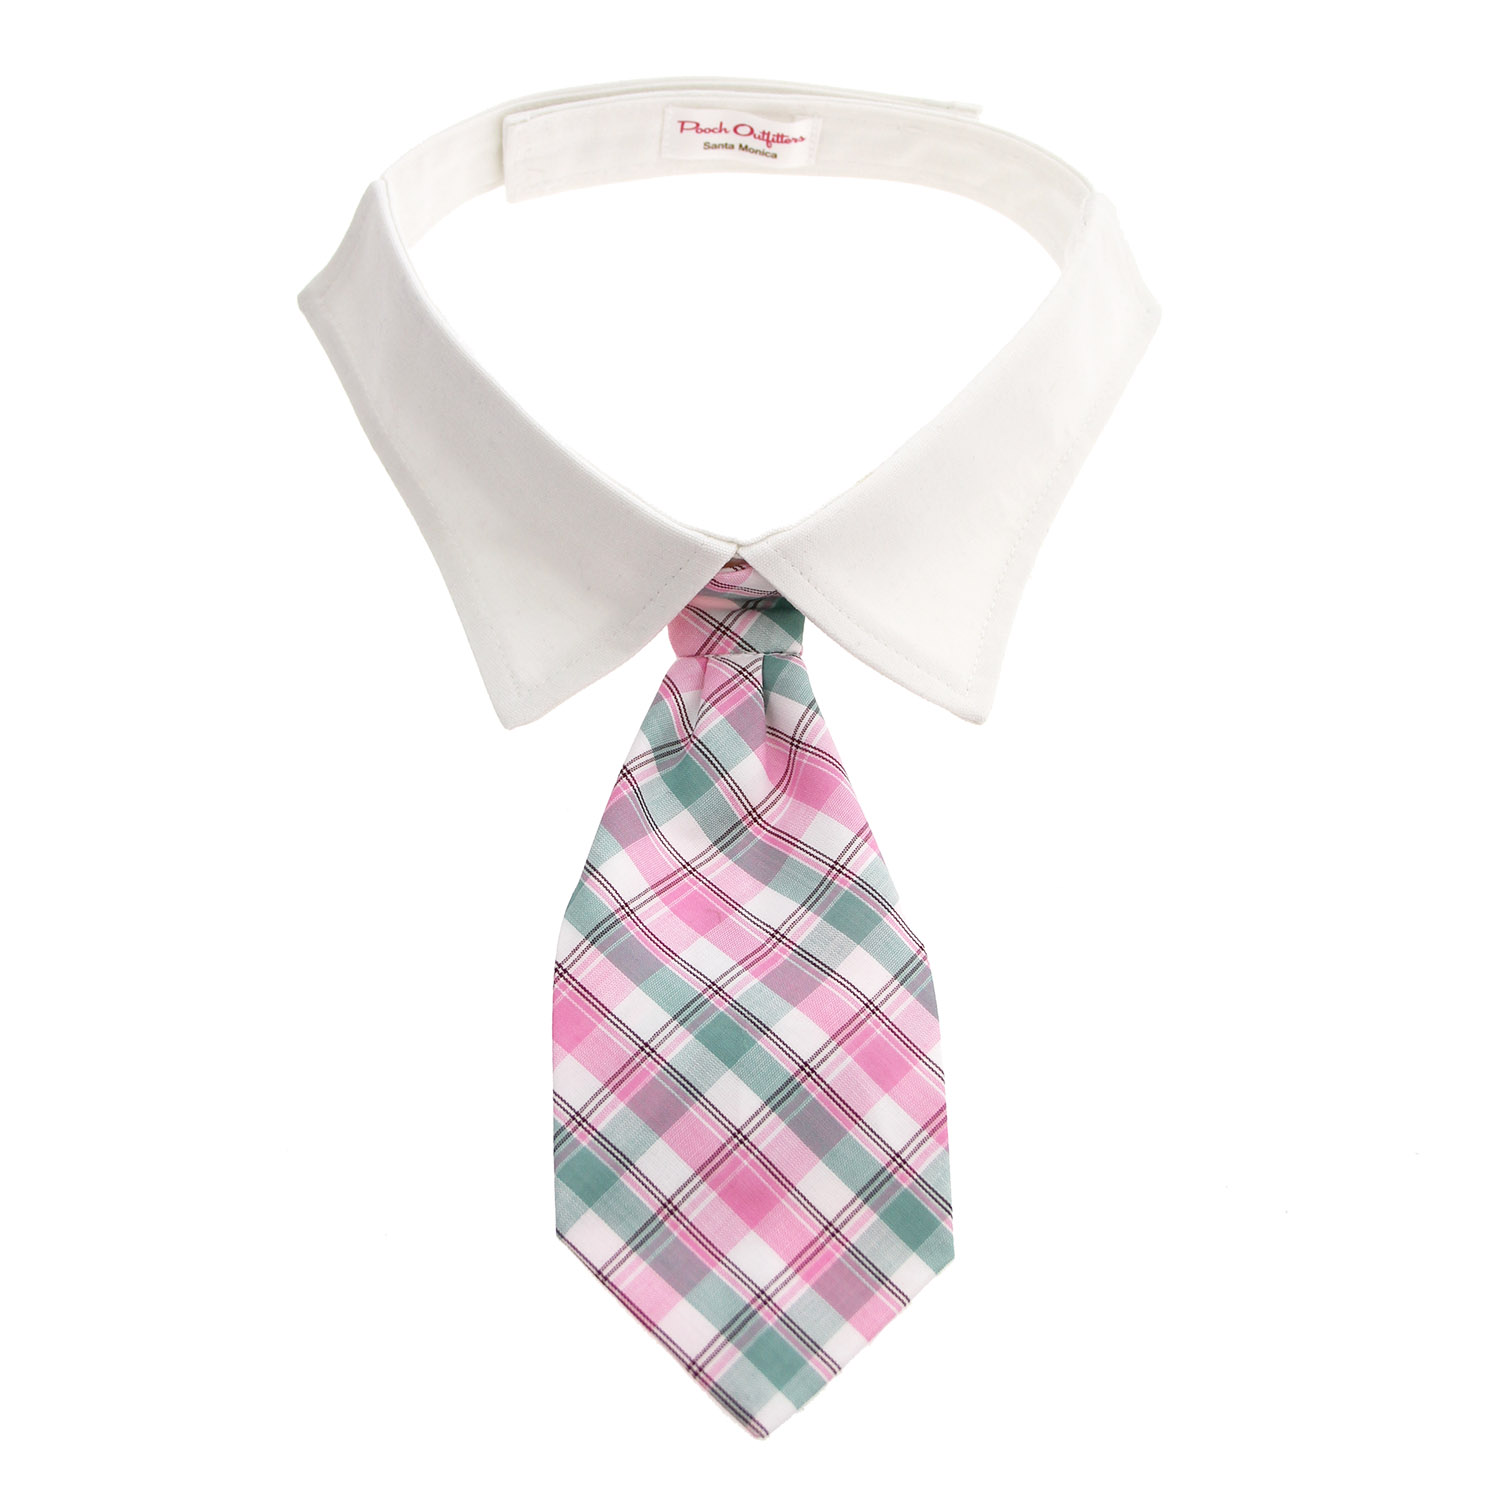 Brooks Dog Shirt Collar and Tie - Pink and Mint Plaid